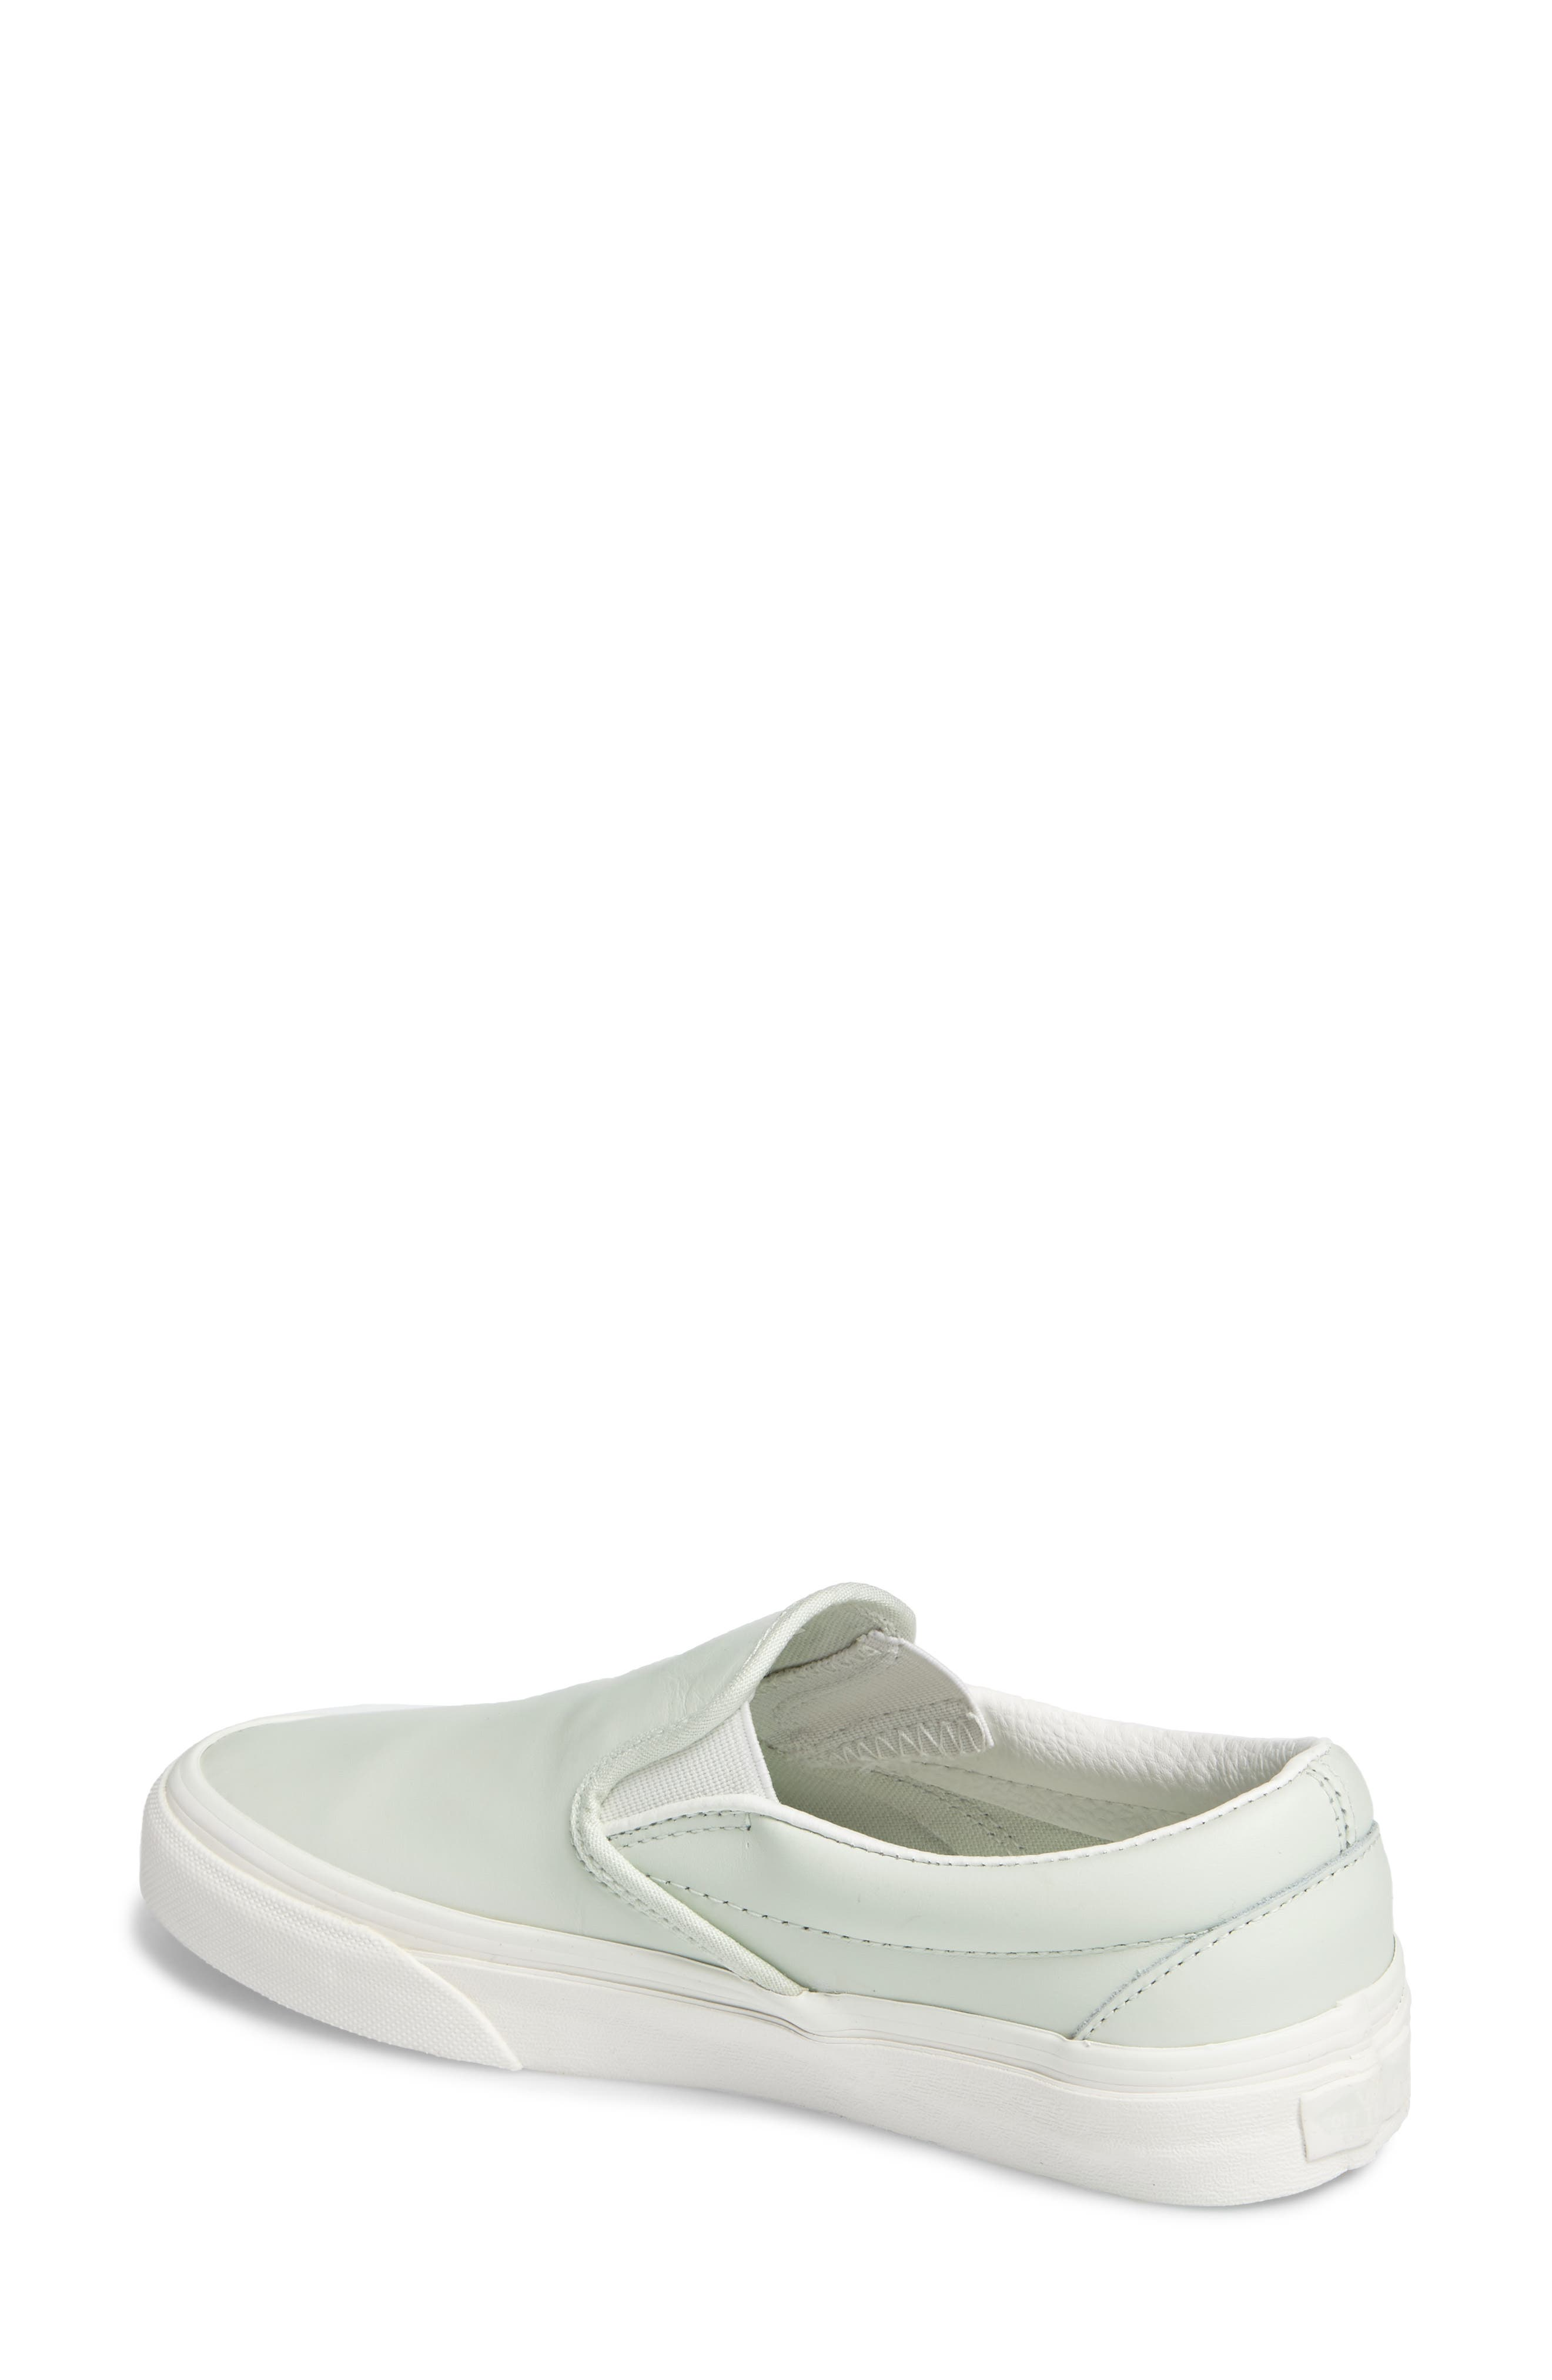 Classic Slip-On Sneaker,                             Alternate thumbnail 159, color,